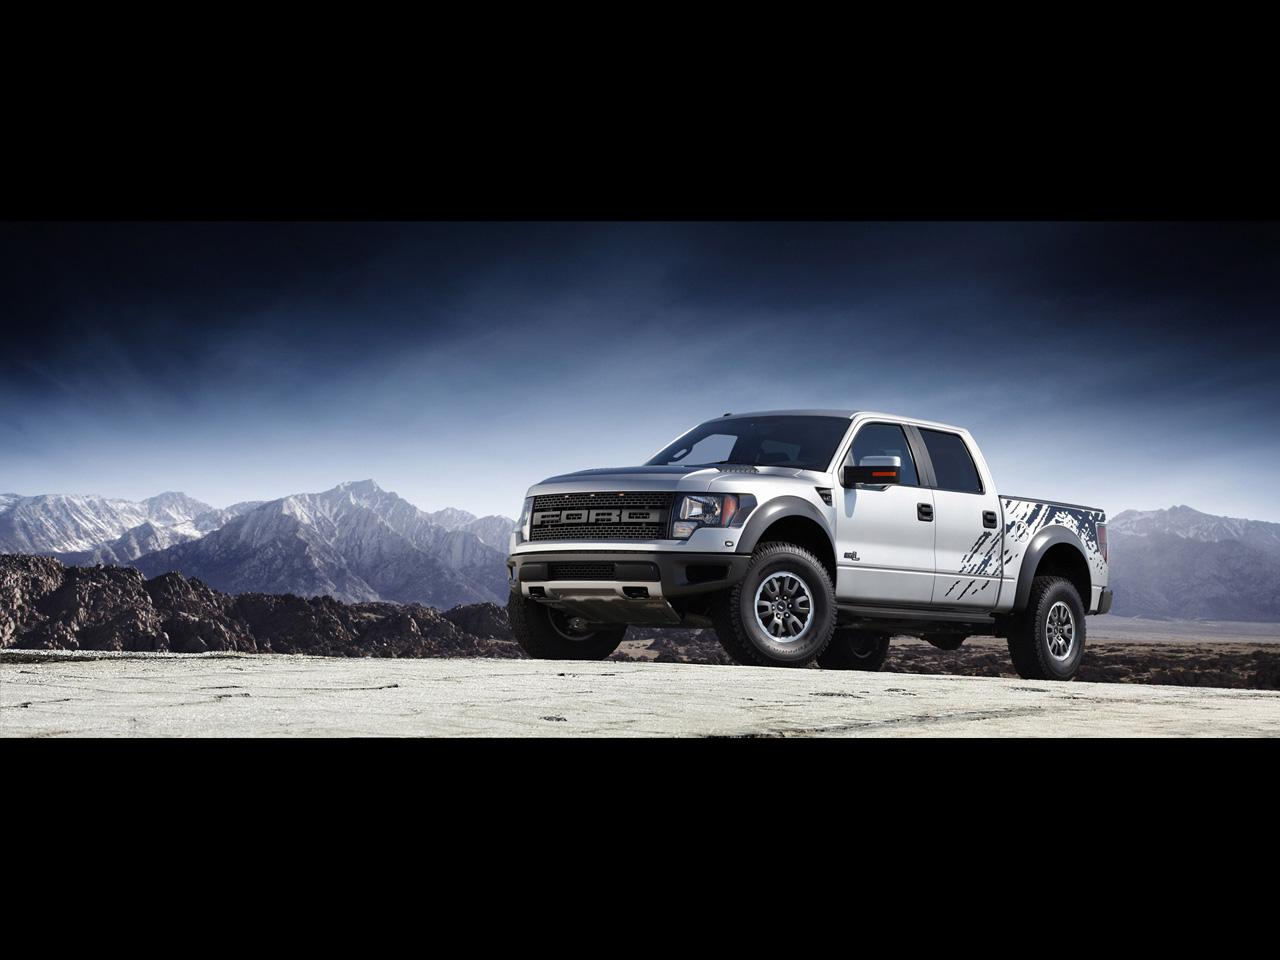 2011 Ford F 150 SVT Raptor Wallpapers Widescreen Desktop Backgrounds 1280x960